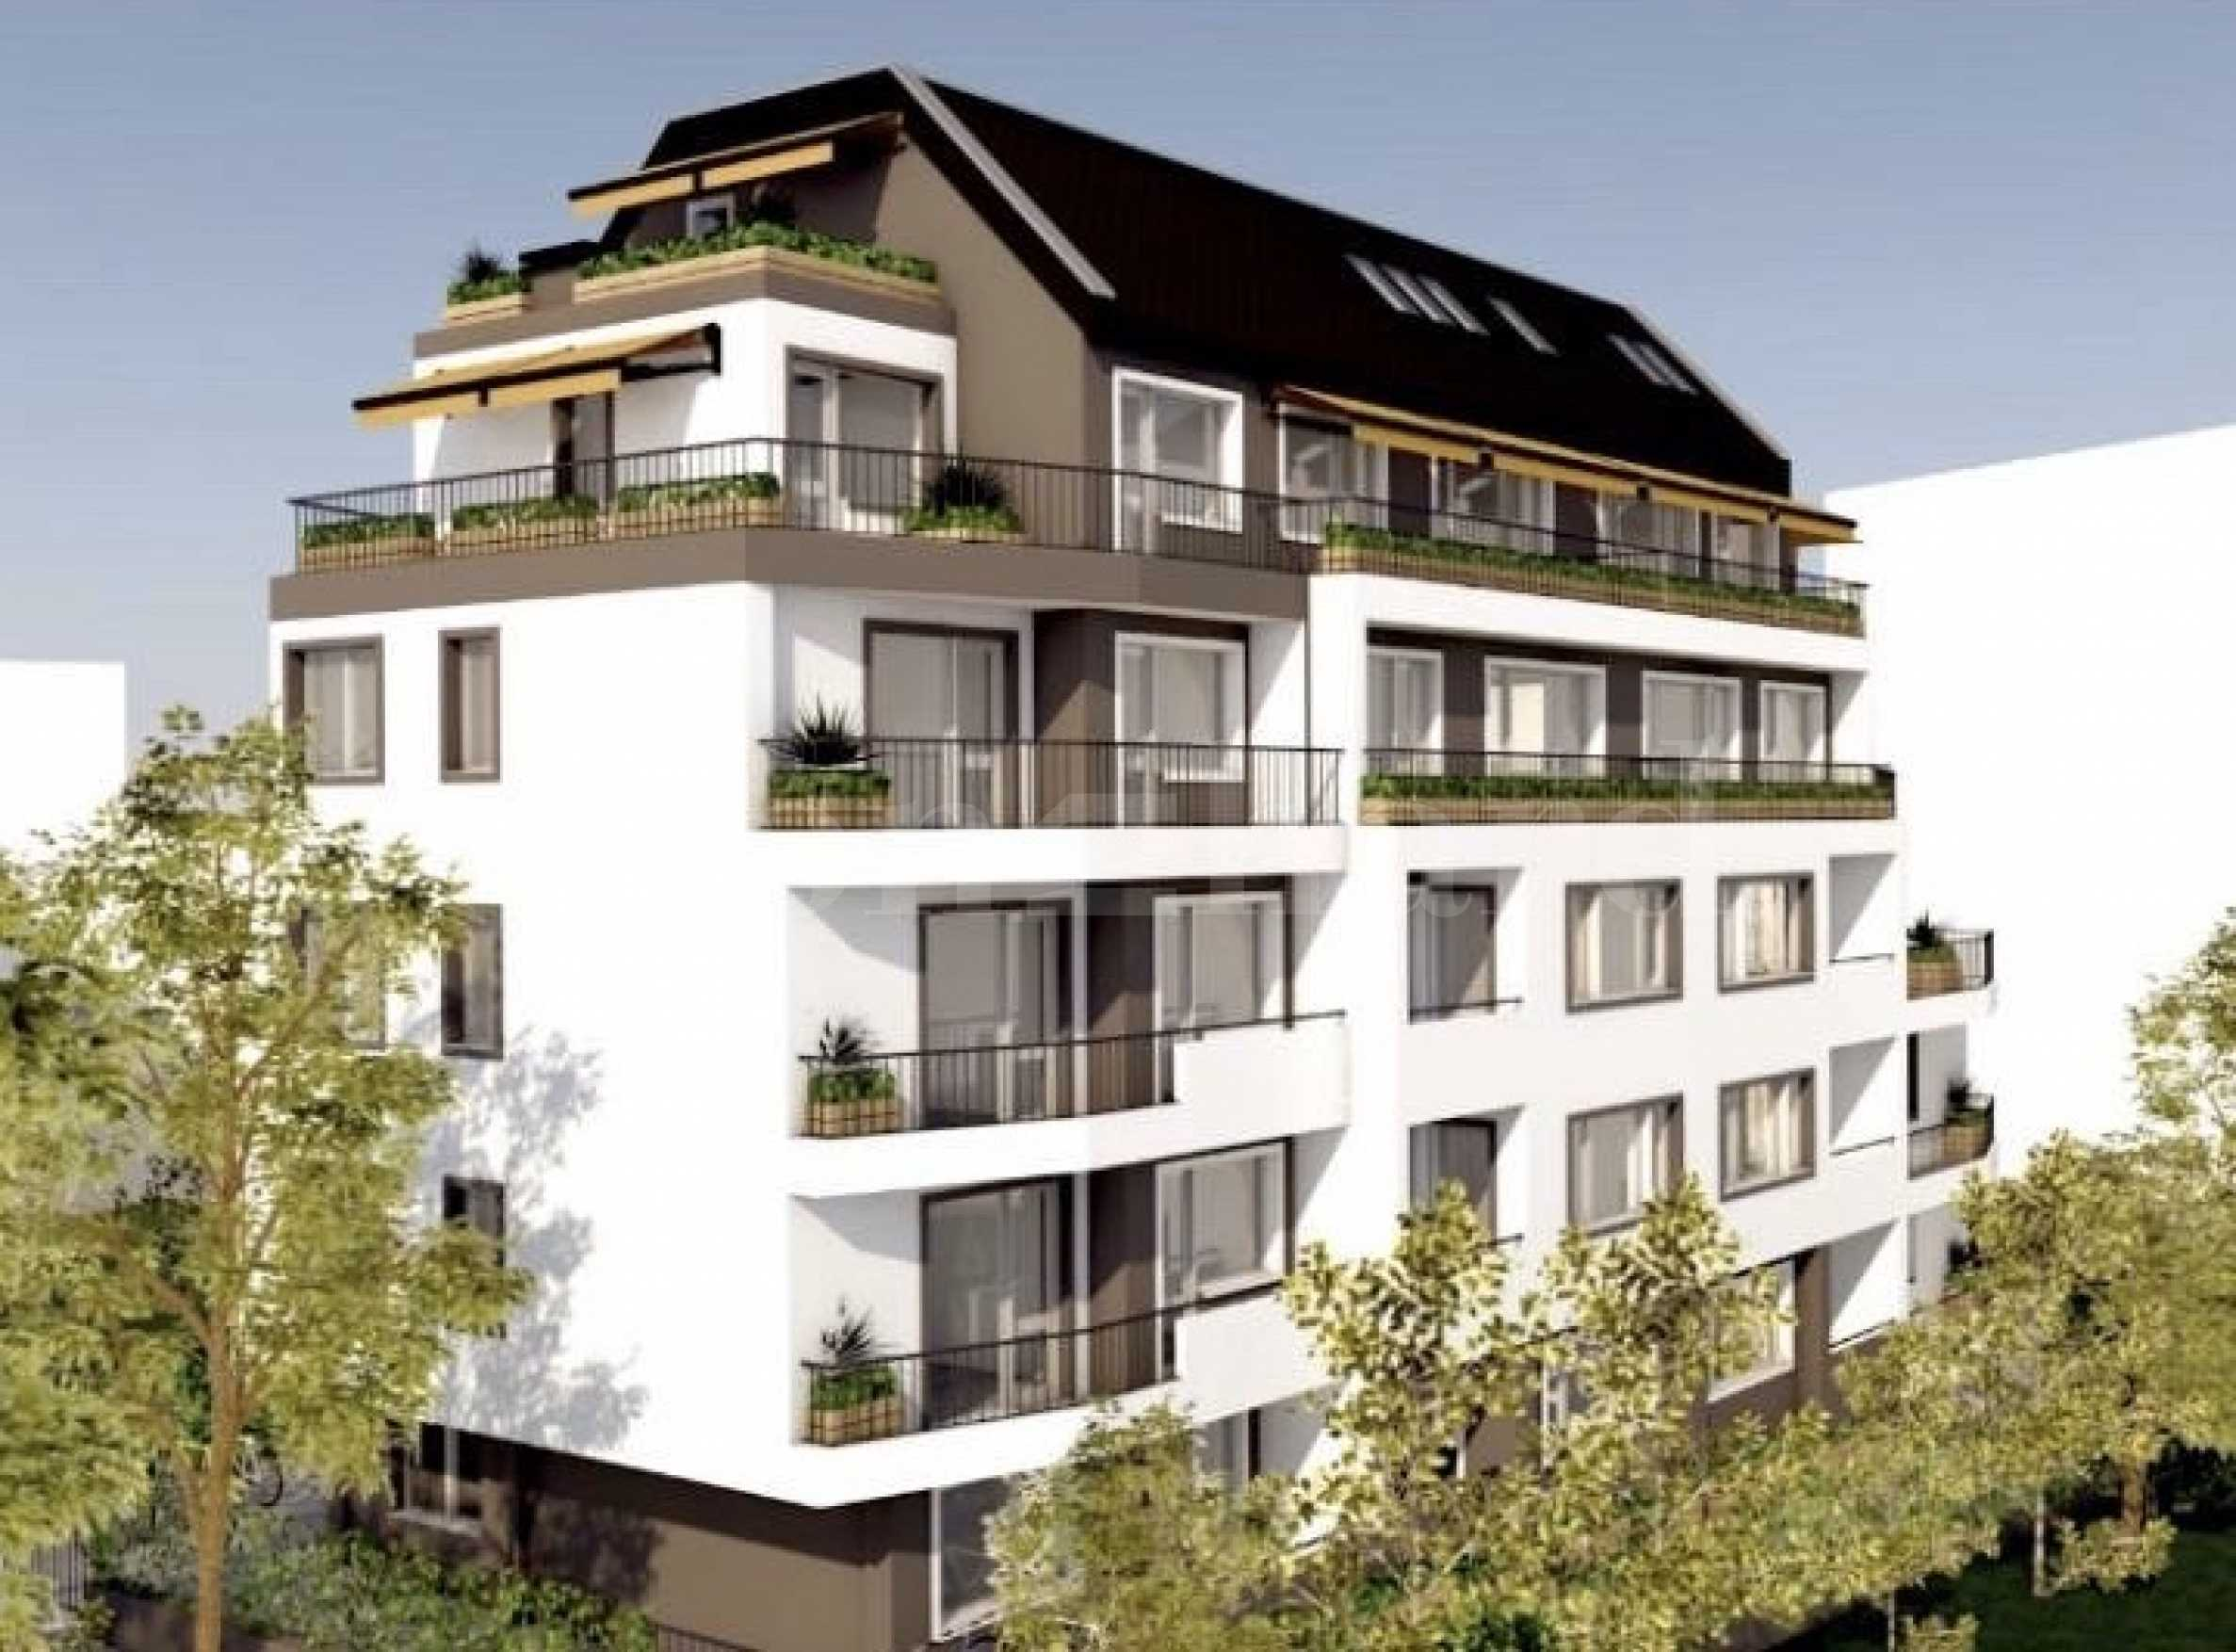 New residential building in Lazur district, next to the Sea Garden1 - Stonehard